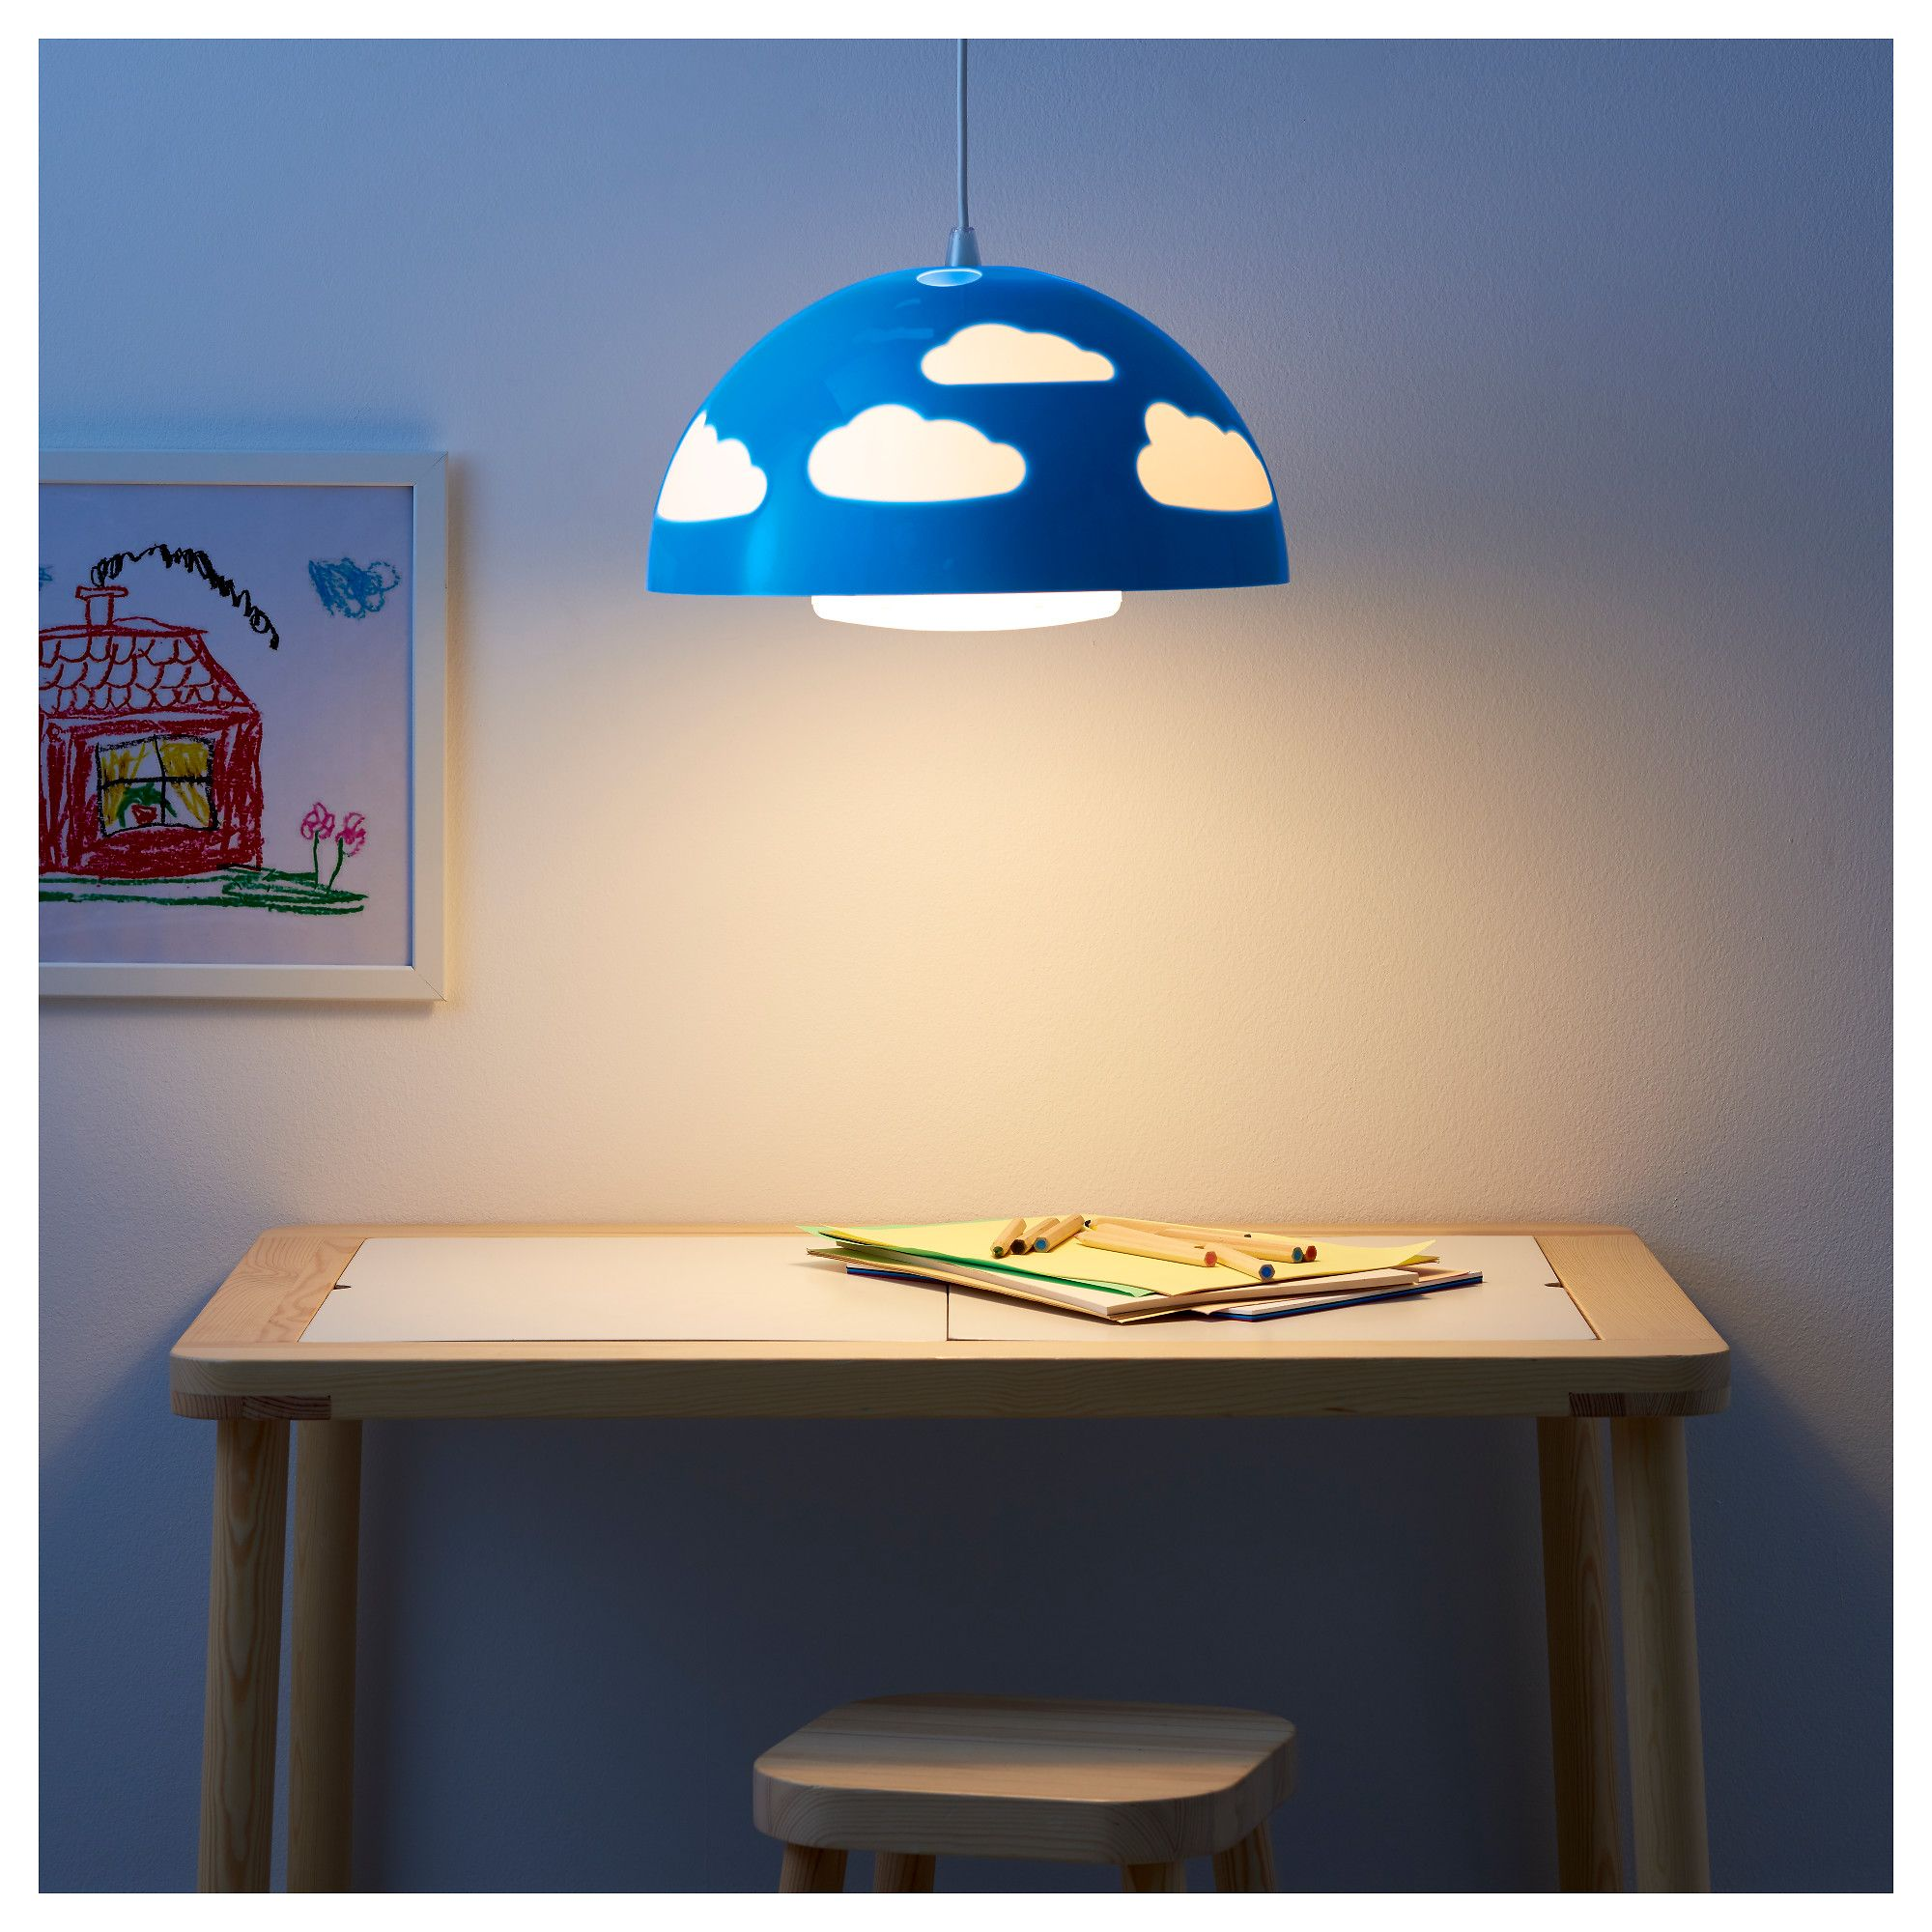 ikea kids lighting. IKEA SKOJIG Pendant Lamp Safety Tested And Tamper-proof To Protect Little Fingers. Ikea Kids Lighting G